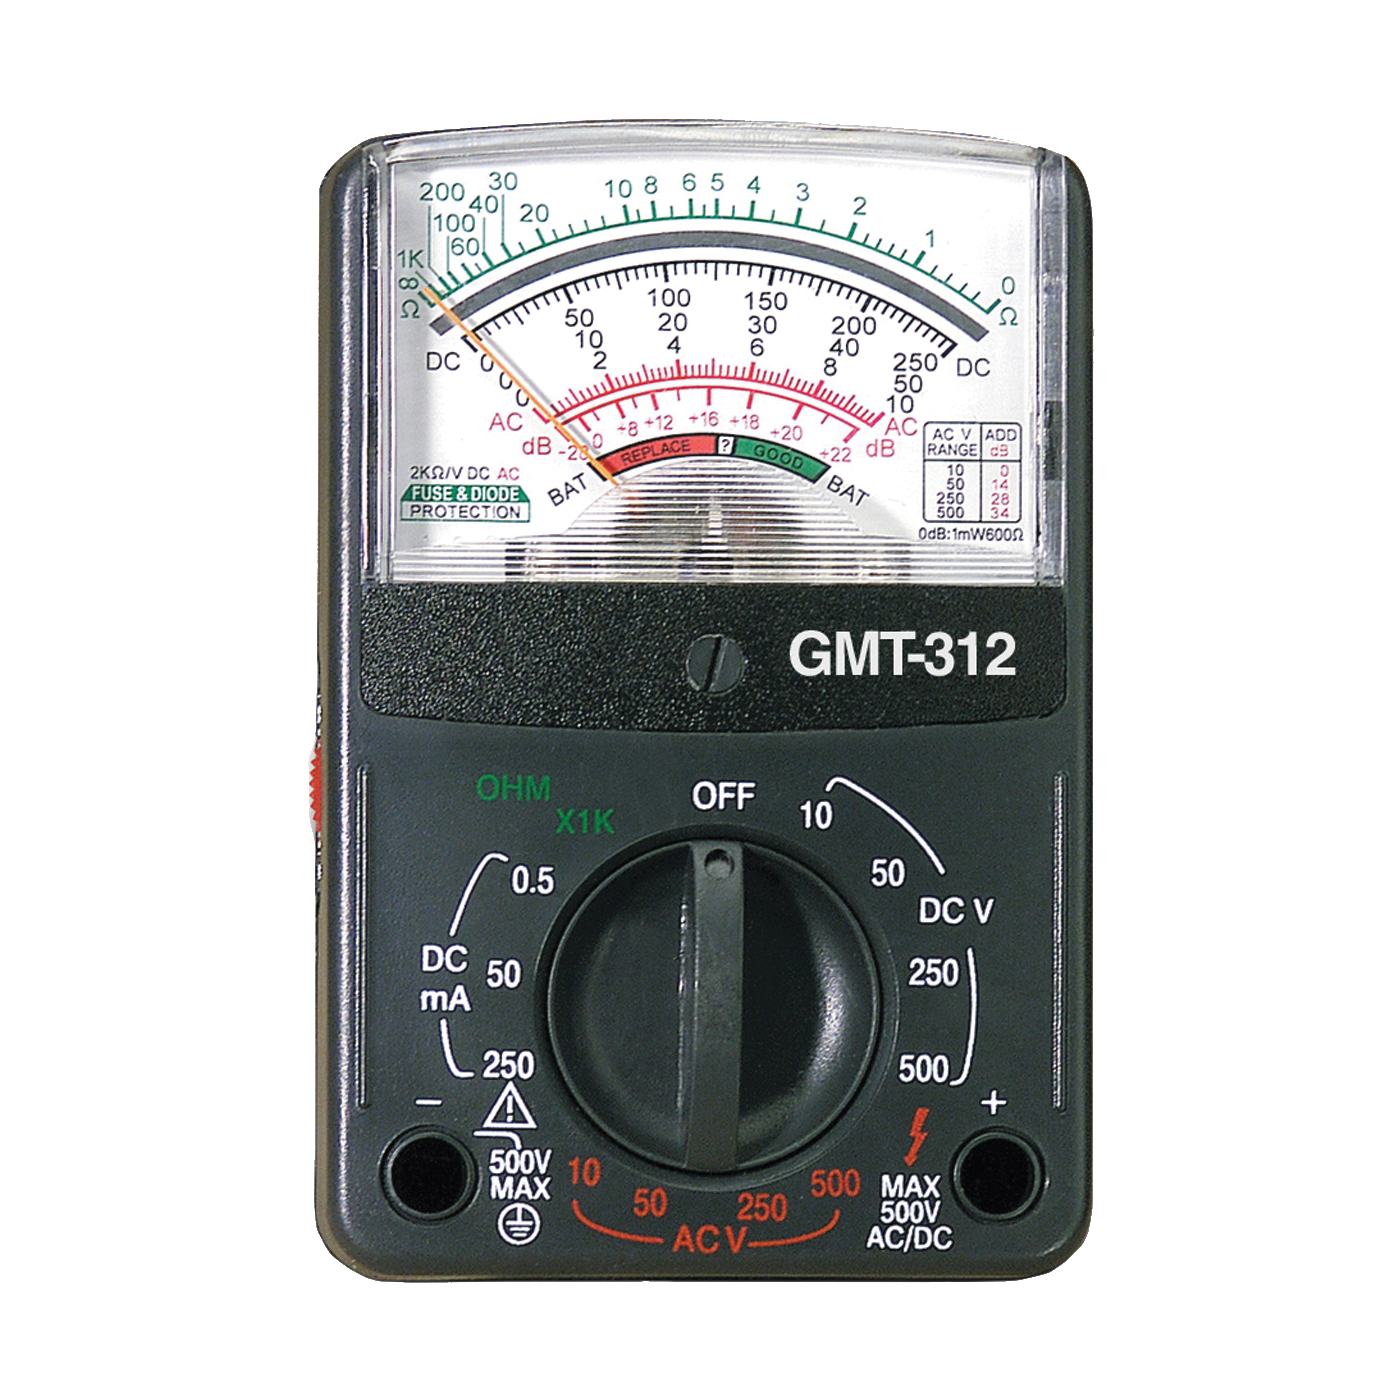 Picture of GB GMT-312 Analog Multimeter, Analog Display, Functions: AC Voltage, Continuity, DC Current, DC Voltage, Resistance